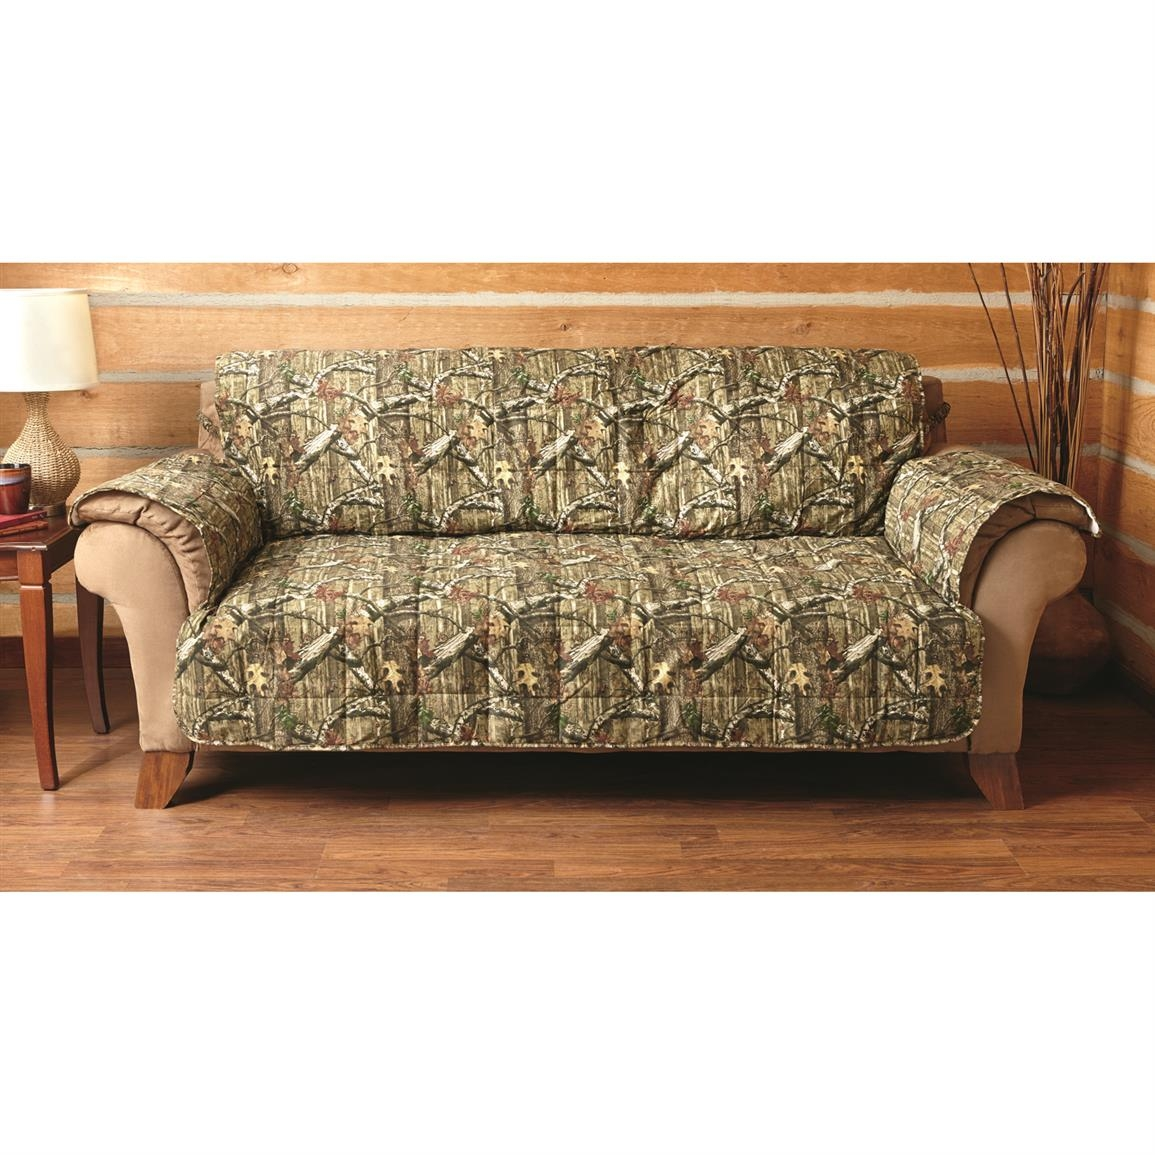 Mossy Oak Camo Furniture Covers 647980 Furniture Covers At With Regard To Camo Sofa Cover (Image 13 of 15)